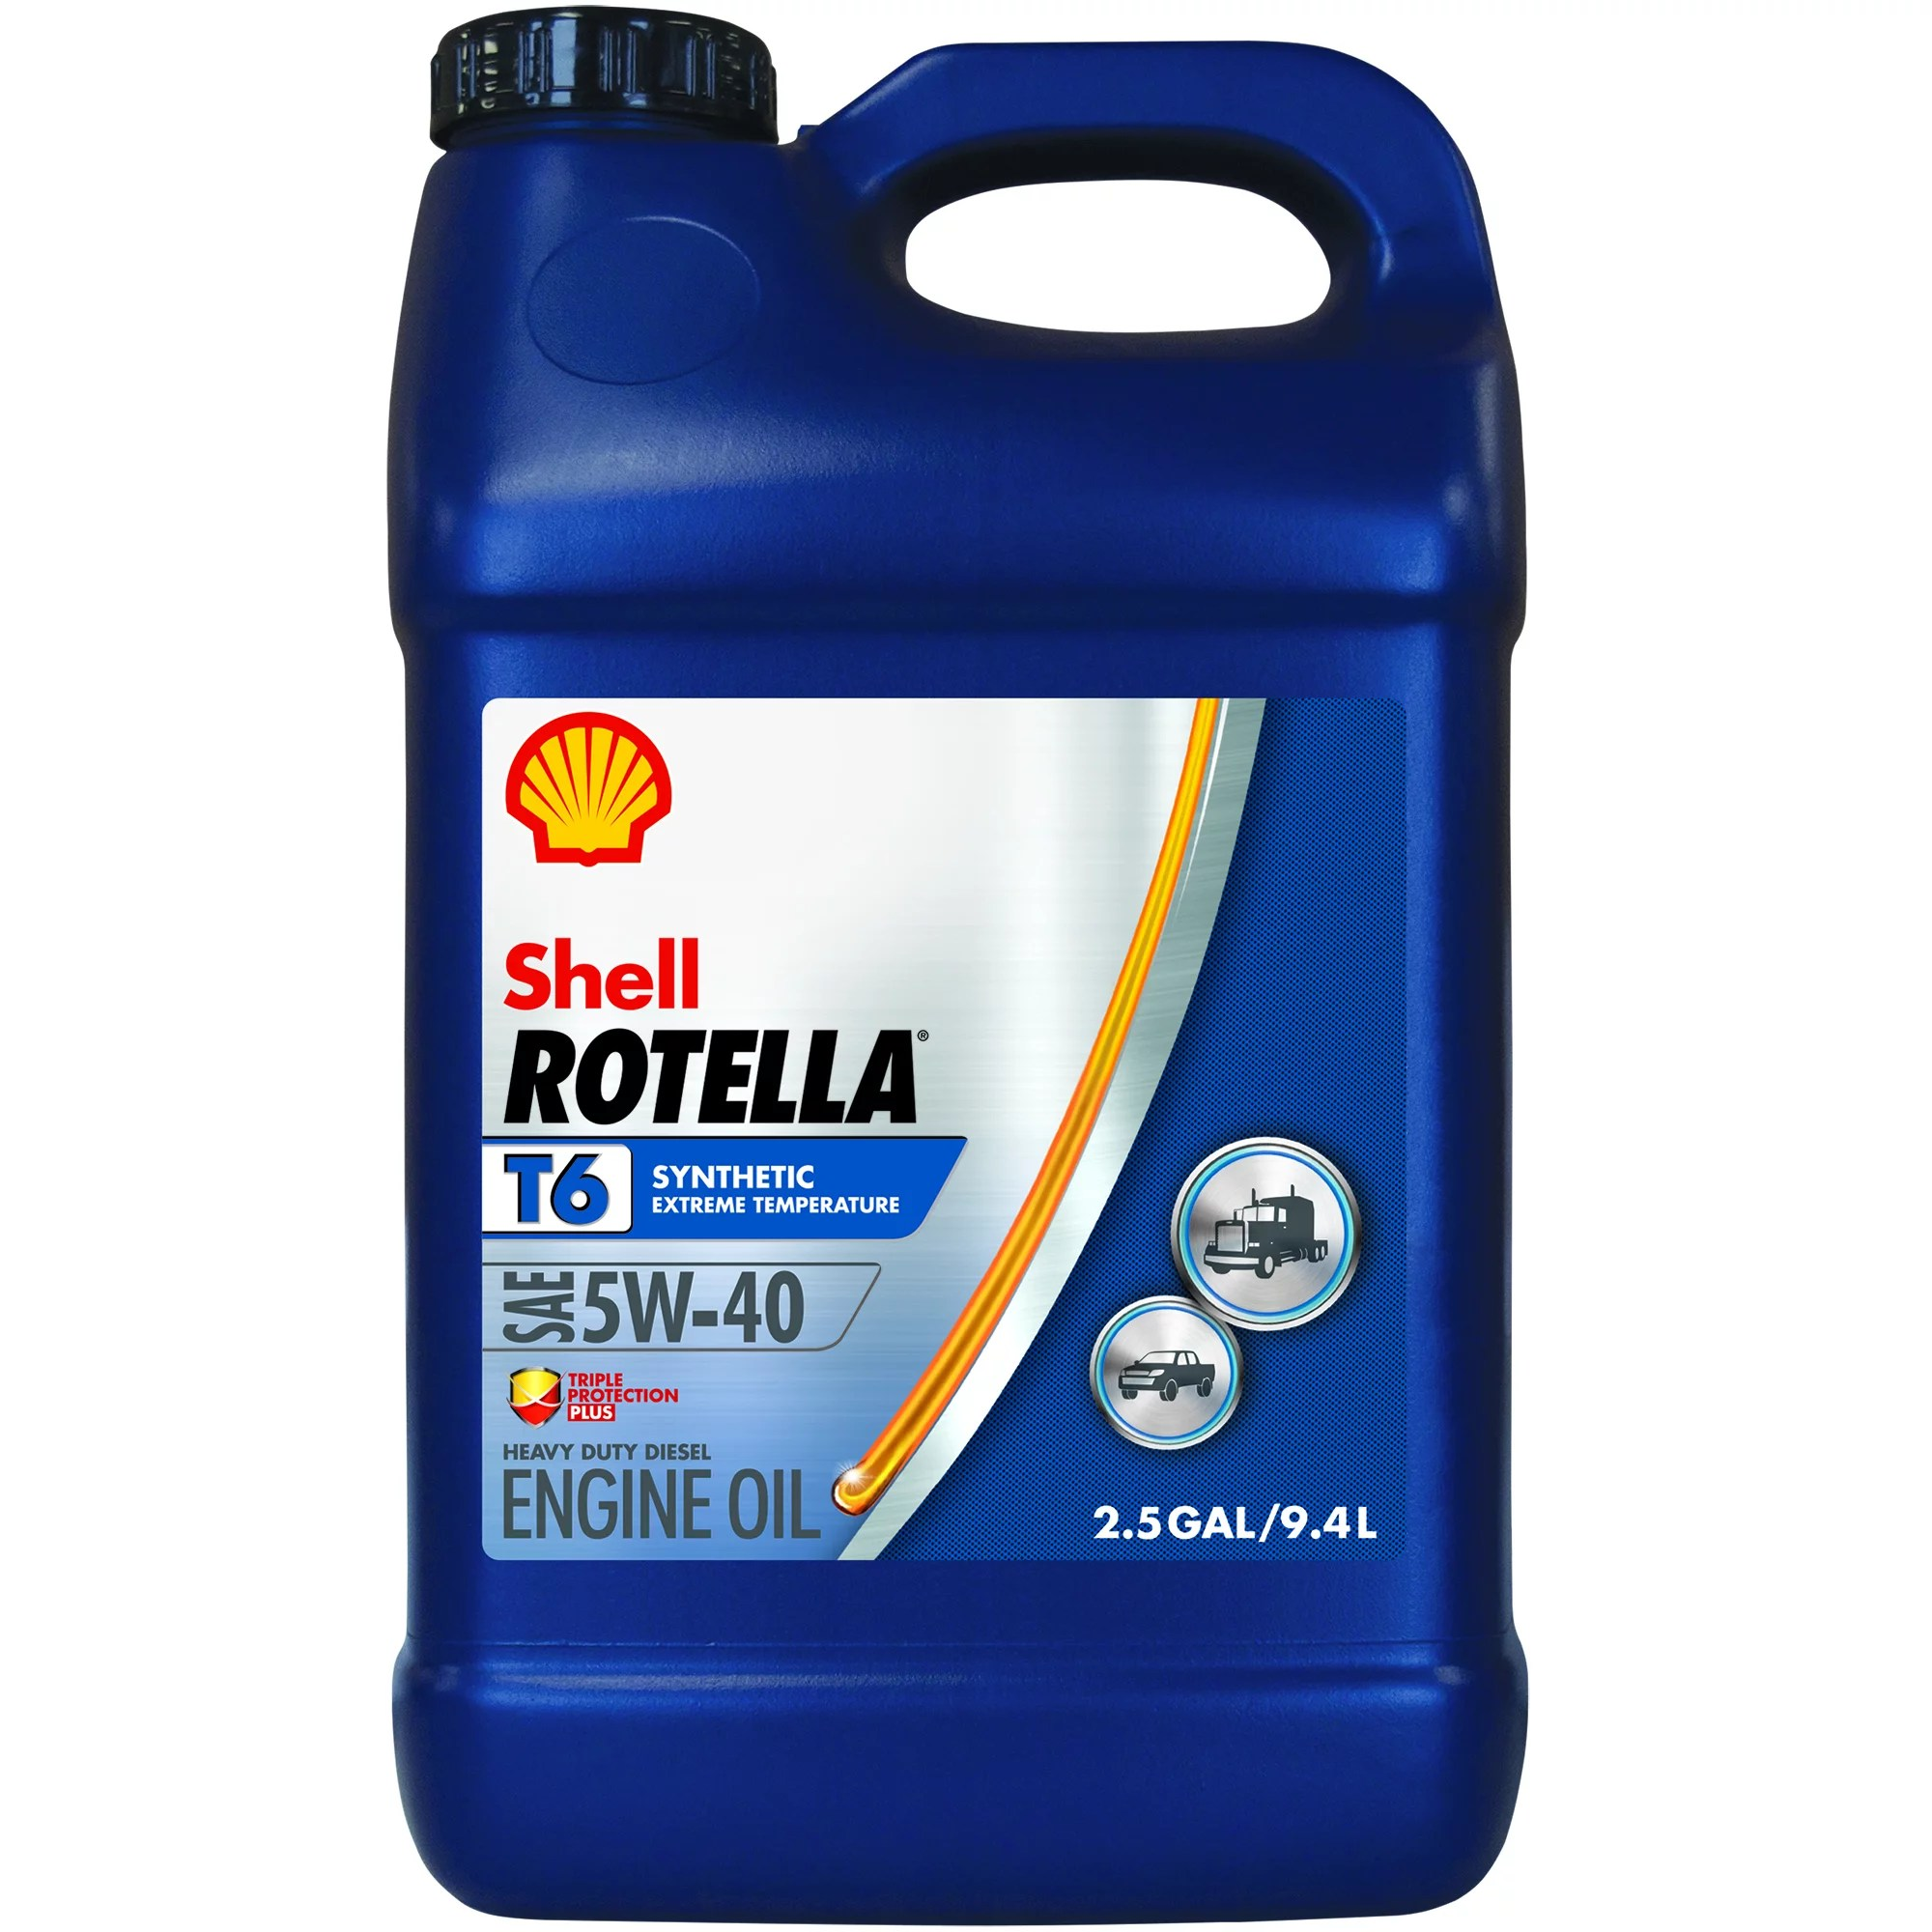 5 W 40 Rotella T6 5w 40 Full Synthetic Heavy Duty Engine Oil 2 5 Gal